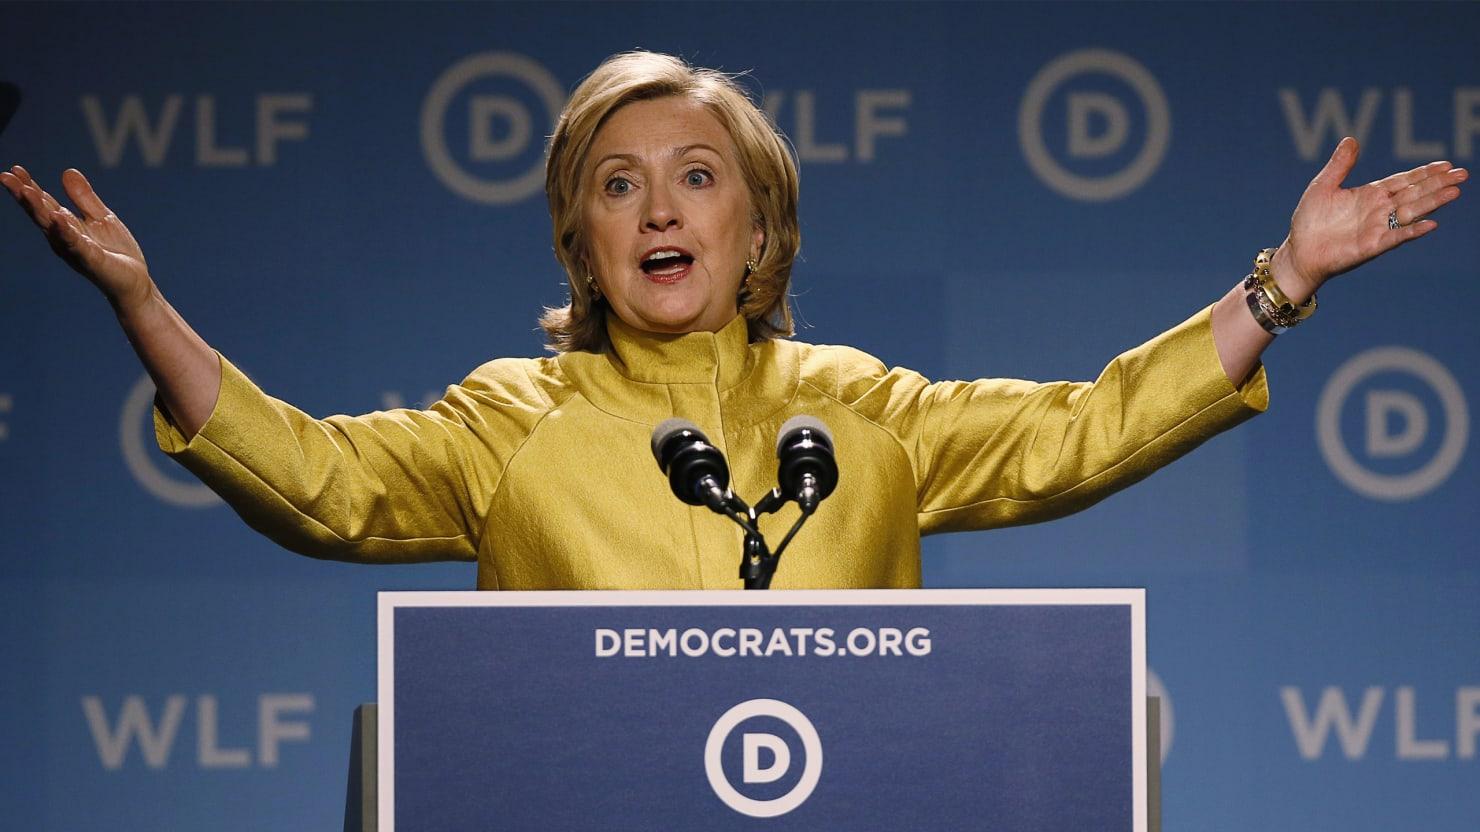 Hillary's Ready for the 'War on Women'